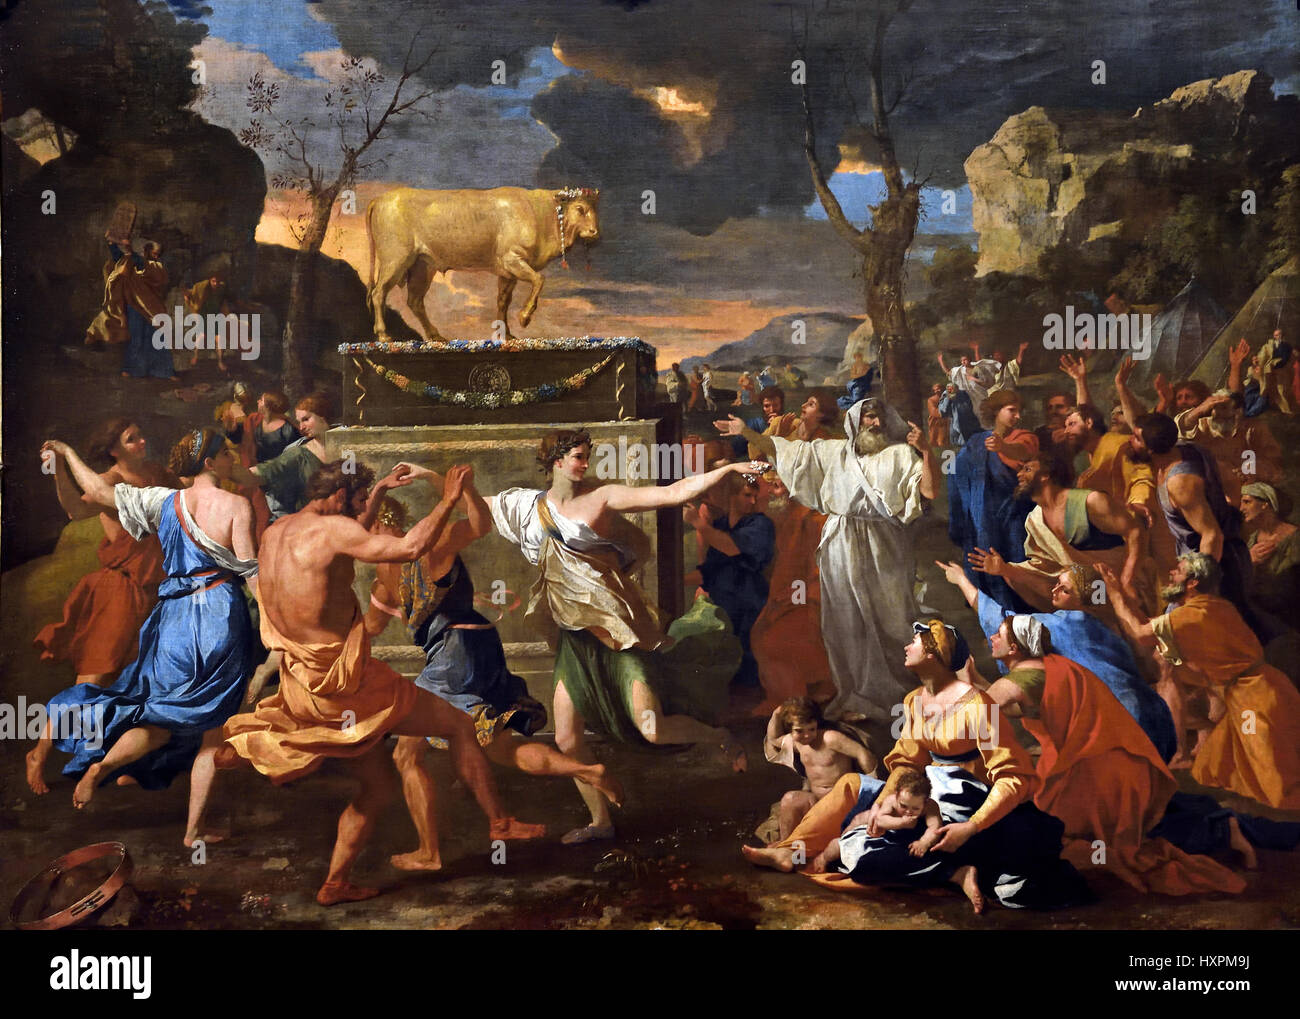 Free coloring page golden calf - The Adoration Of The Golden Calf 1633 Moses Climbed Mount Sinai To Receive The Tablets